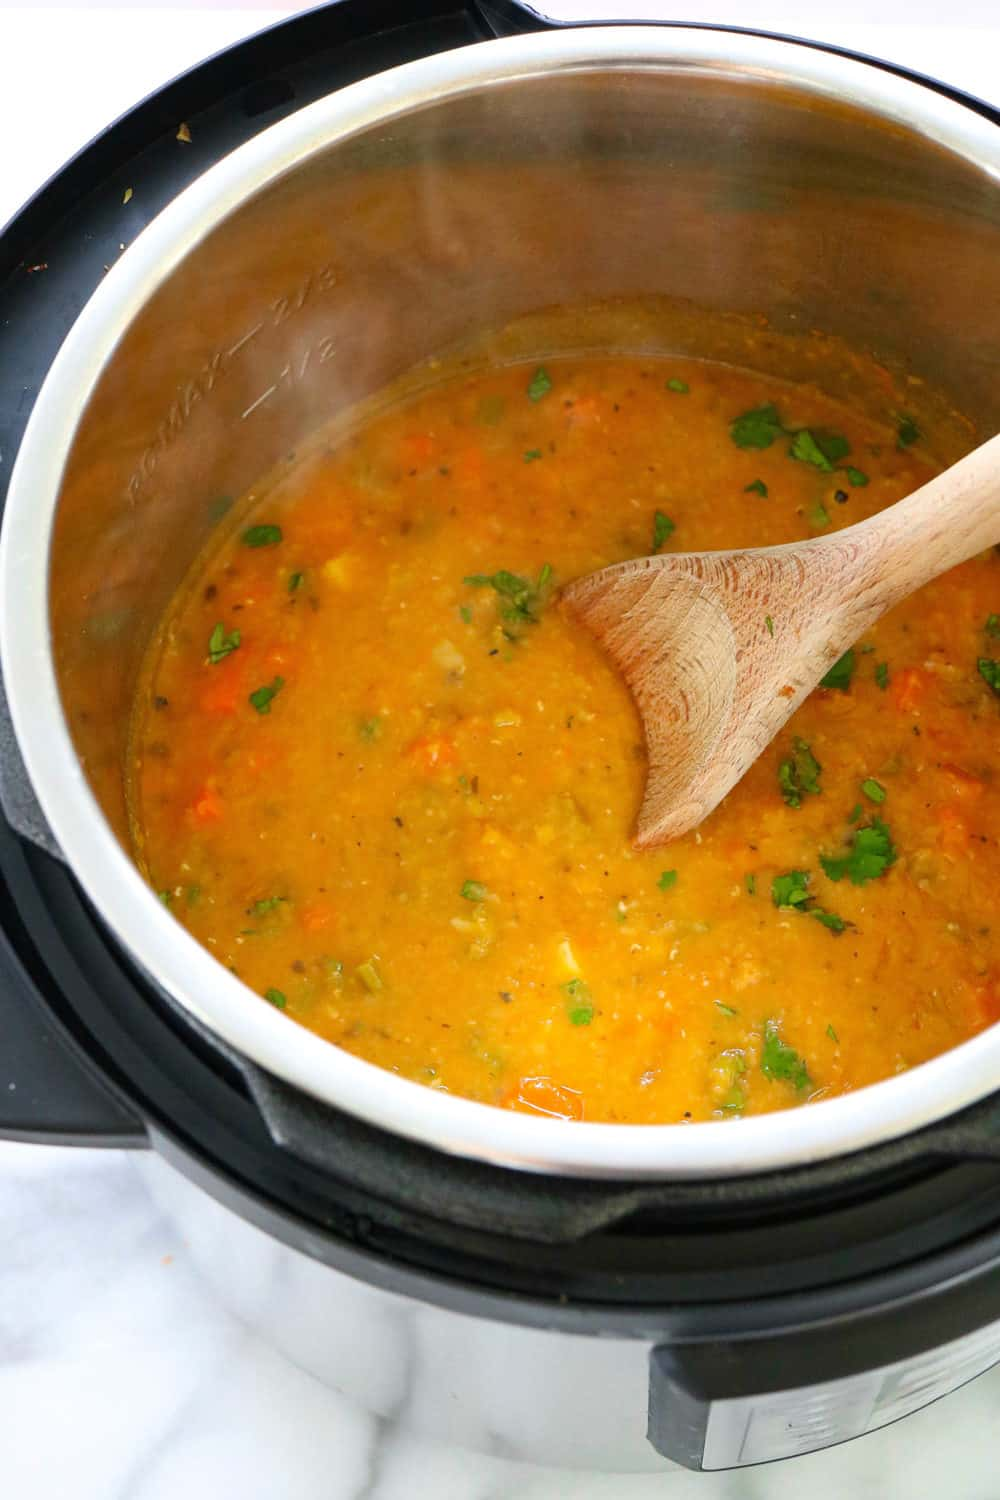 lentil soup cooking in the instant pot with a wooden spoon in it